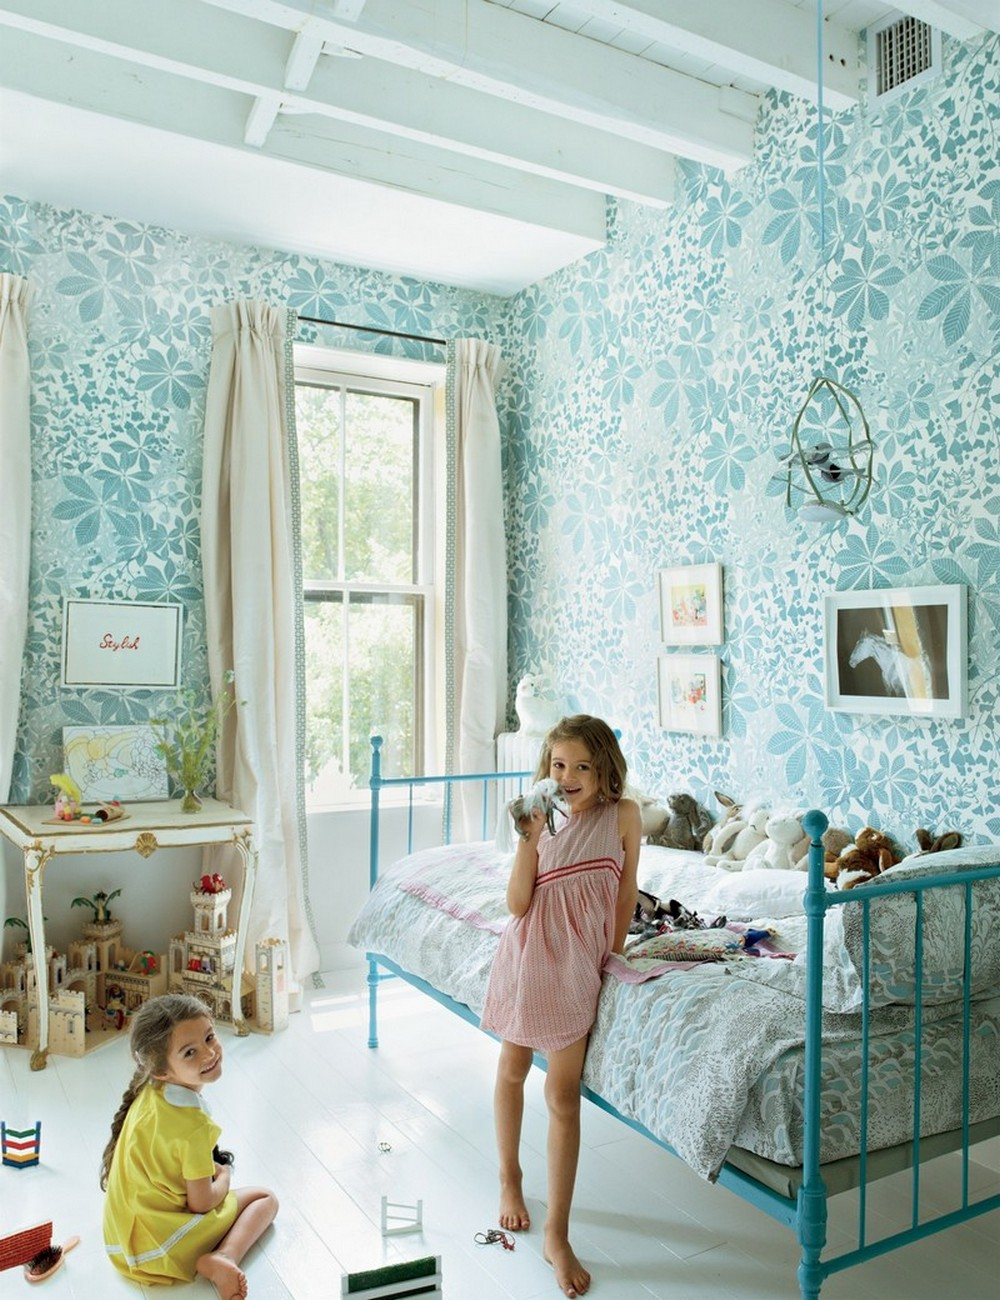 CovetED Shows The 2019 Trends For Spring Inspired Kid's Bedroom Decor Kid's Bedroom Decor CovetED Shows The 2019 Trends For Spring Inspired Kid's Bedroom Decor CovetED Shows The 2019 Trends For Spring Inspired Kids Bedroom Decor 5